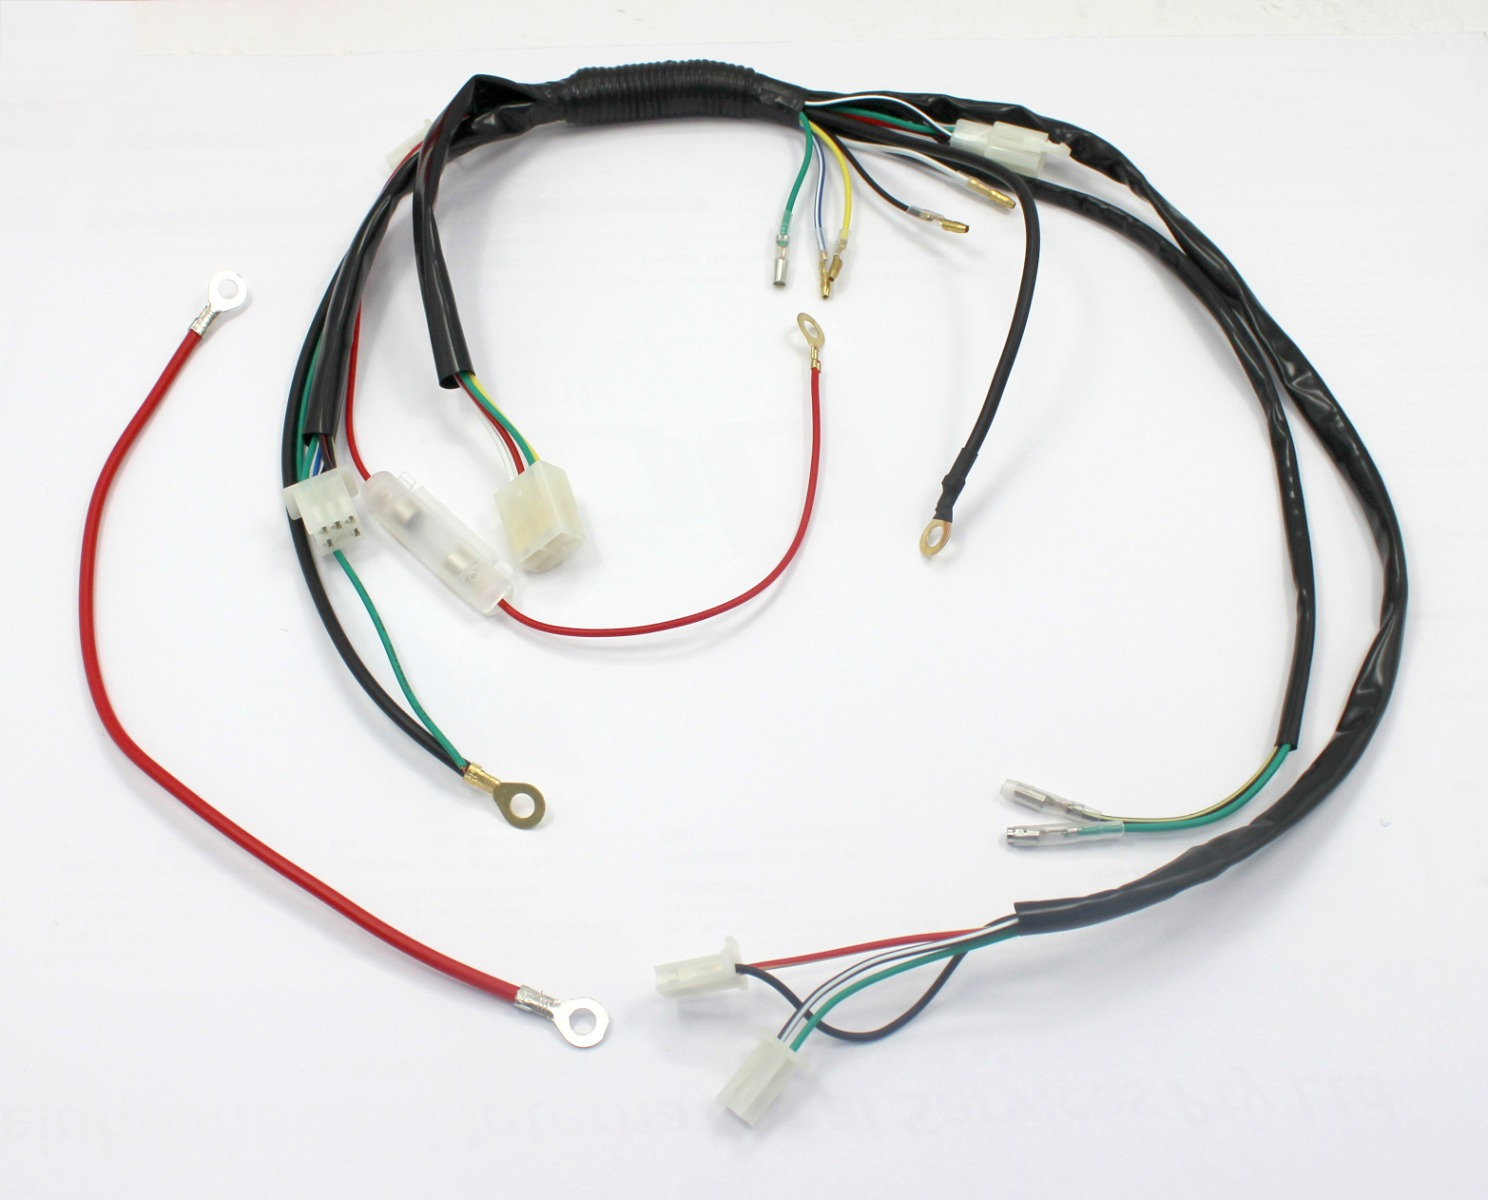 pit dirt bike wiring loom harness for electric start cc cc listing only for wiring harness loom set